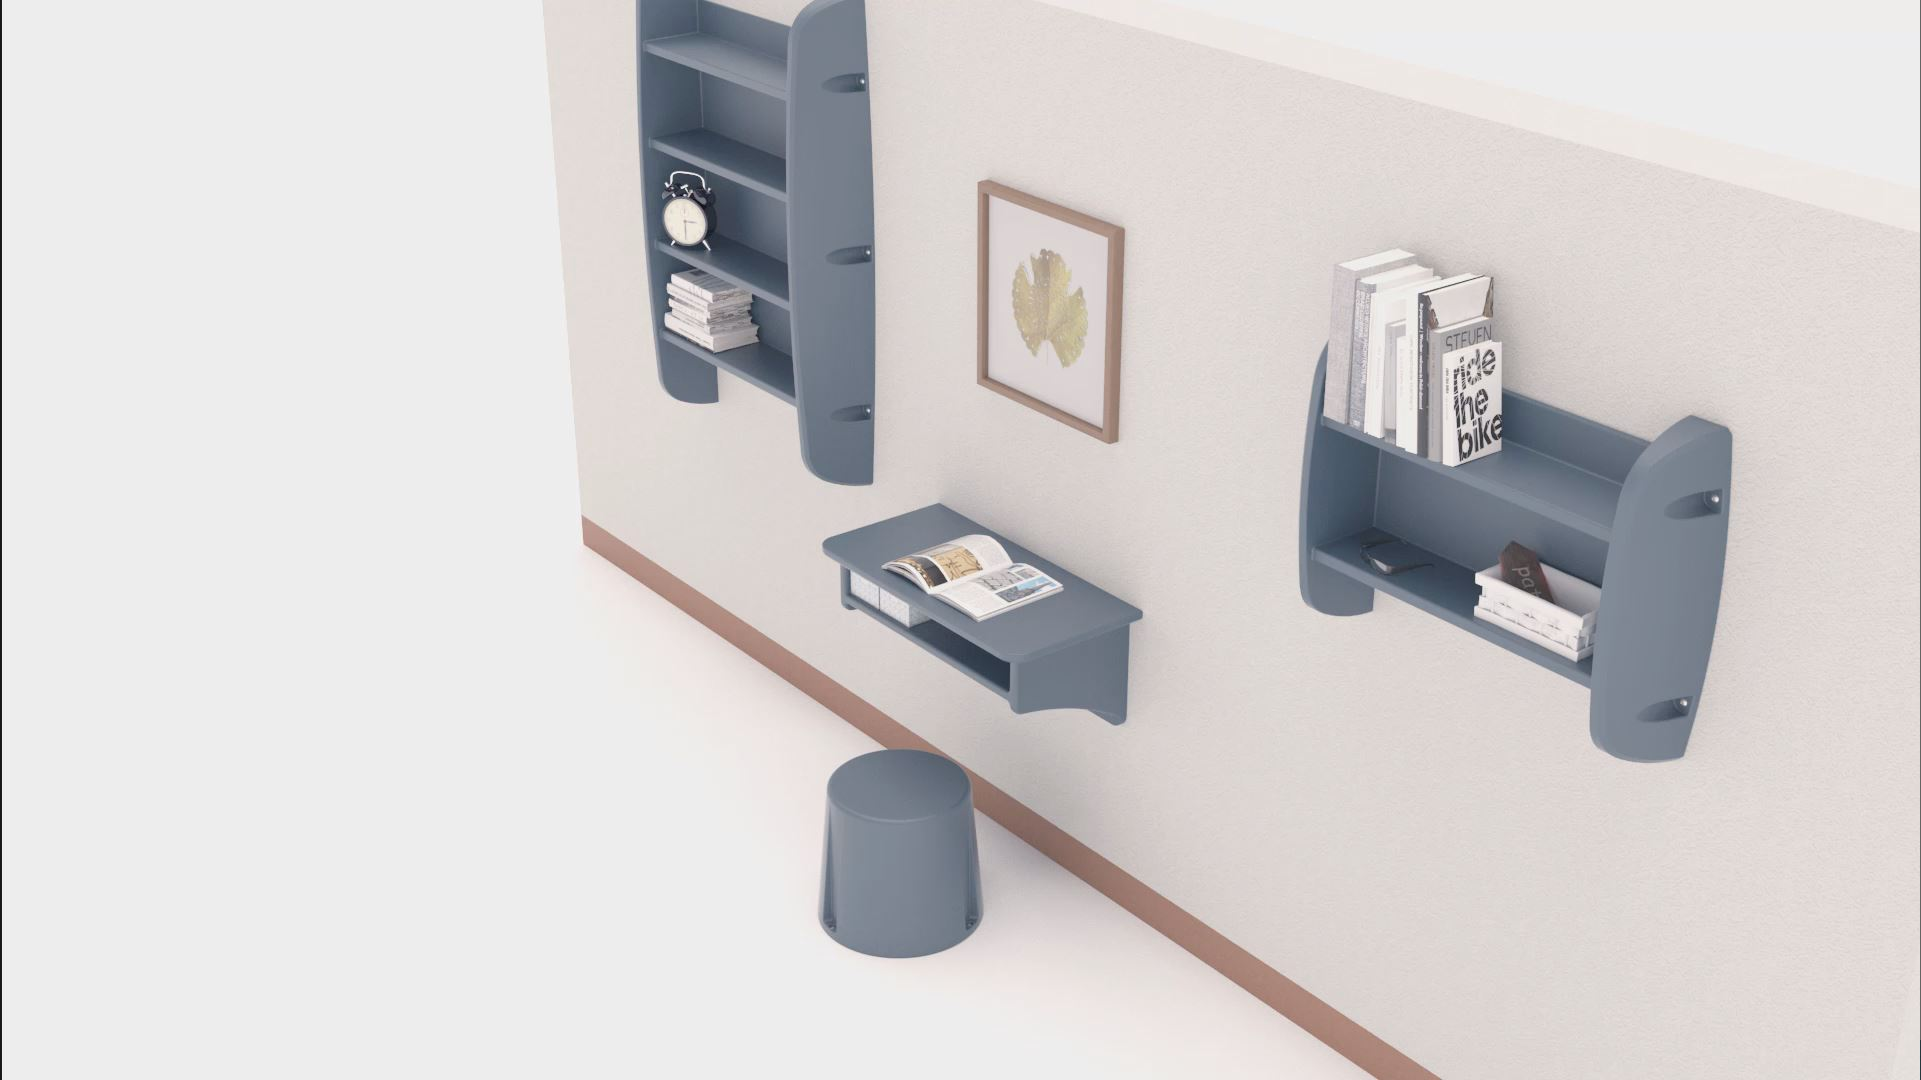 3D rendering of a wall featuring Cranium bedroom furniture in a grey colour